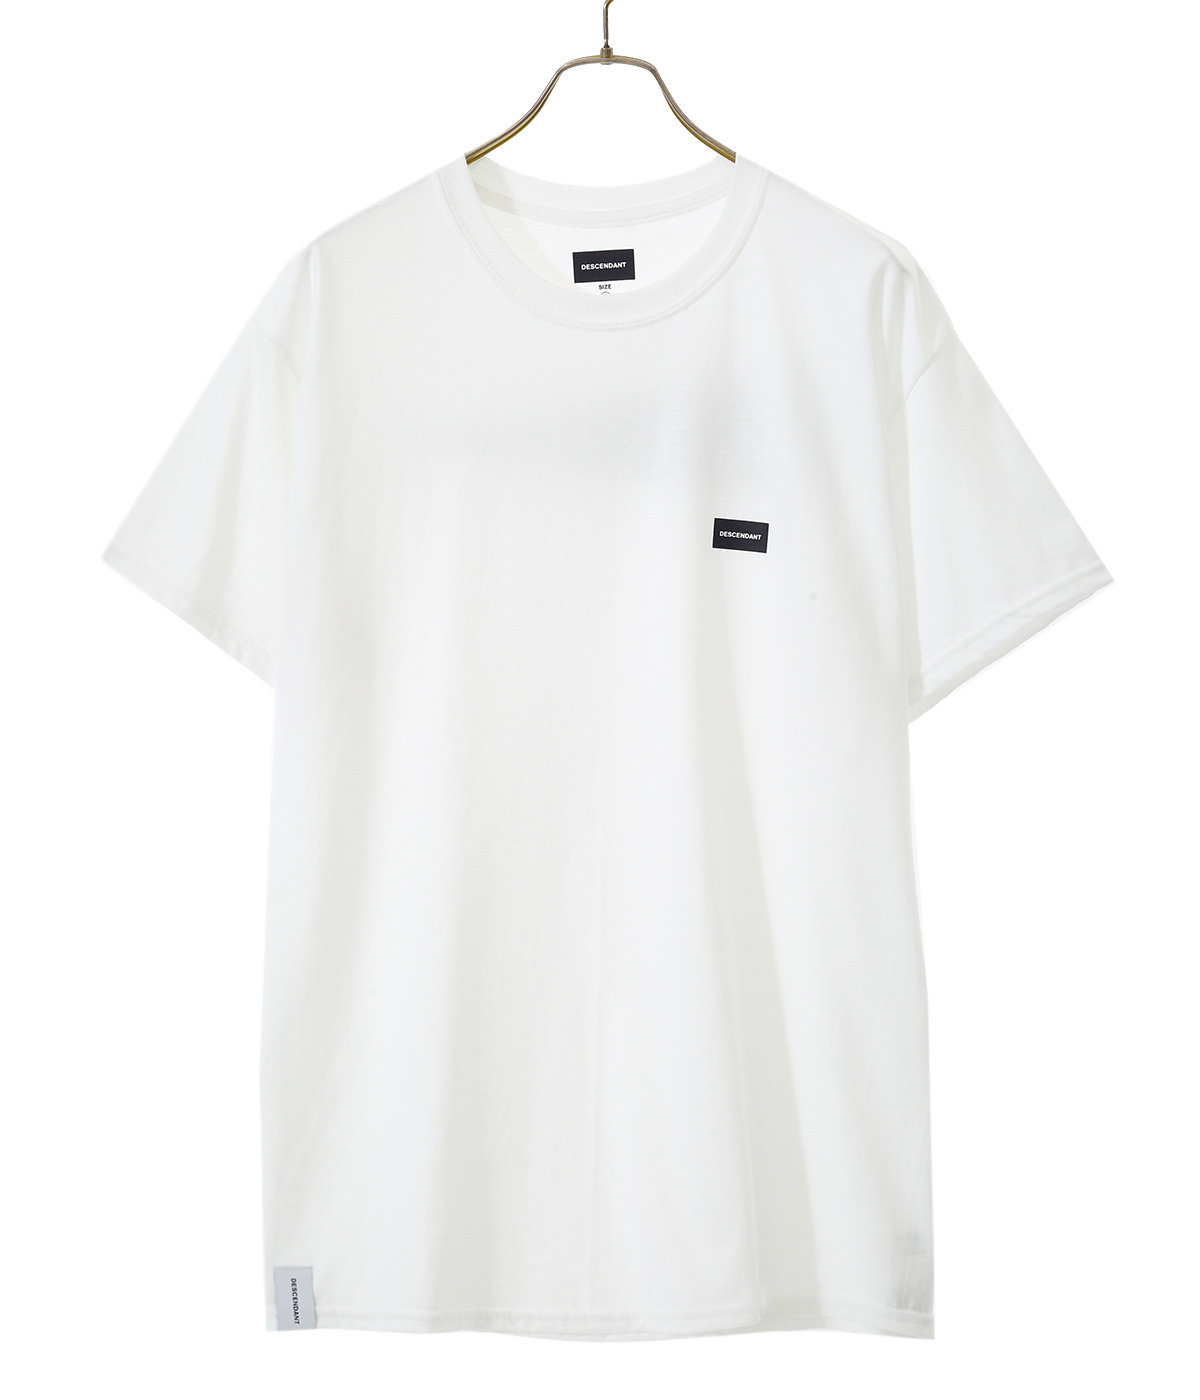 CACHALOT SS TEE